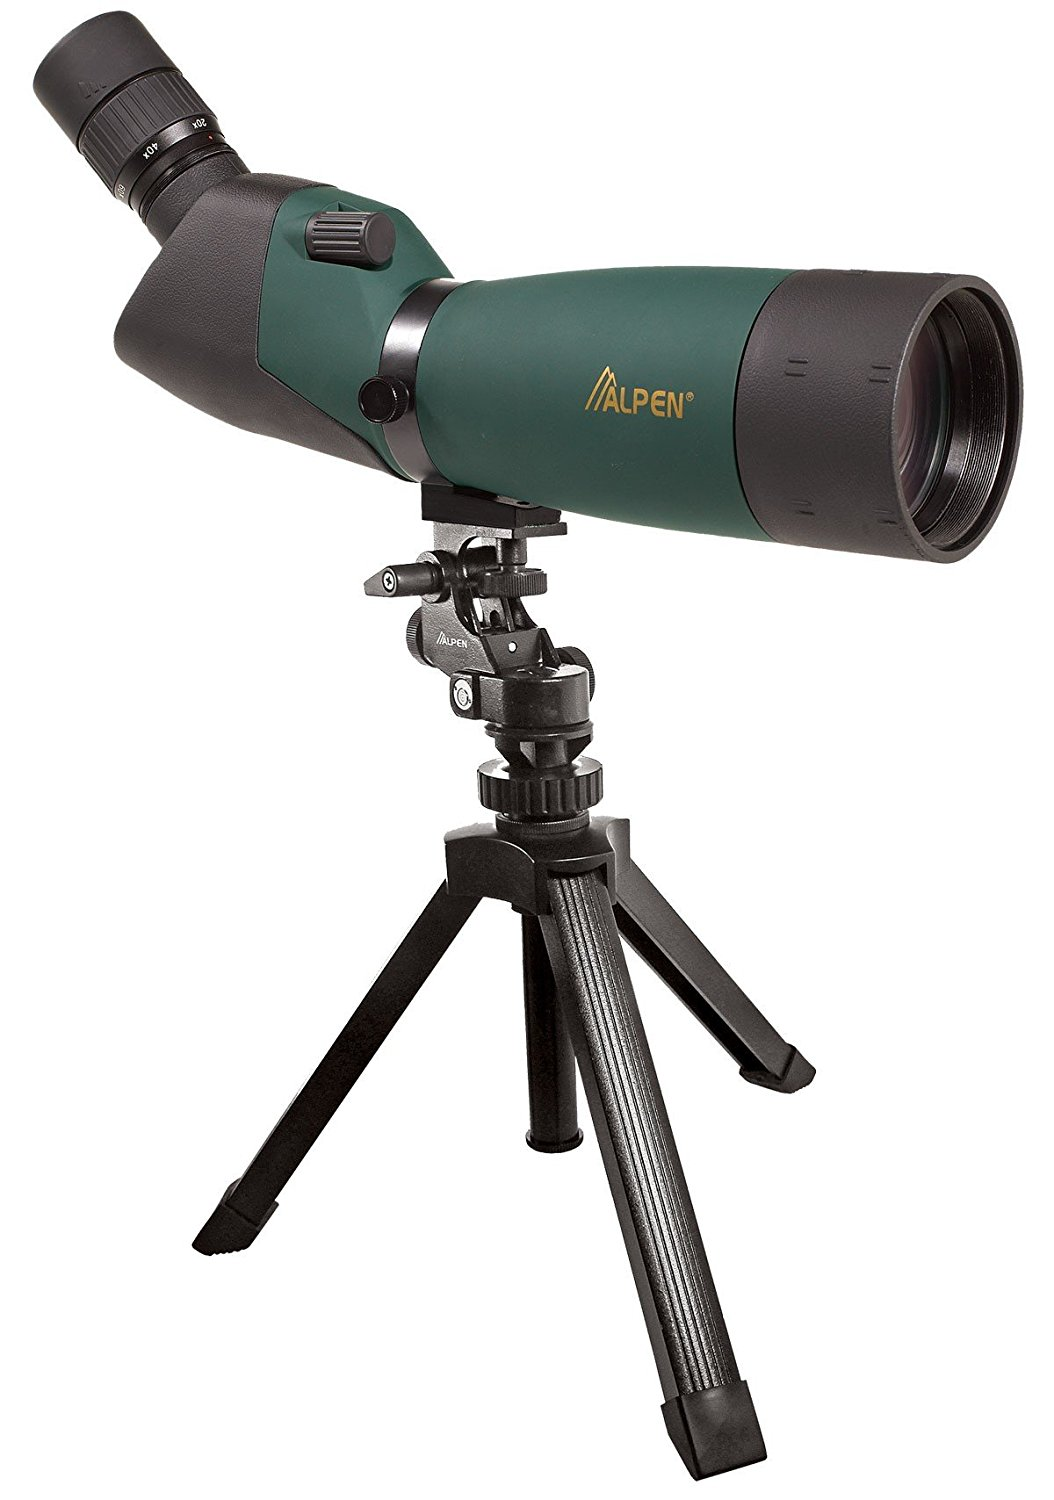 Alpen Optics 20-60x80 Spotting Scope